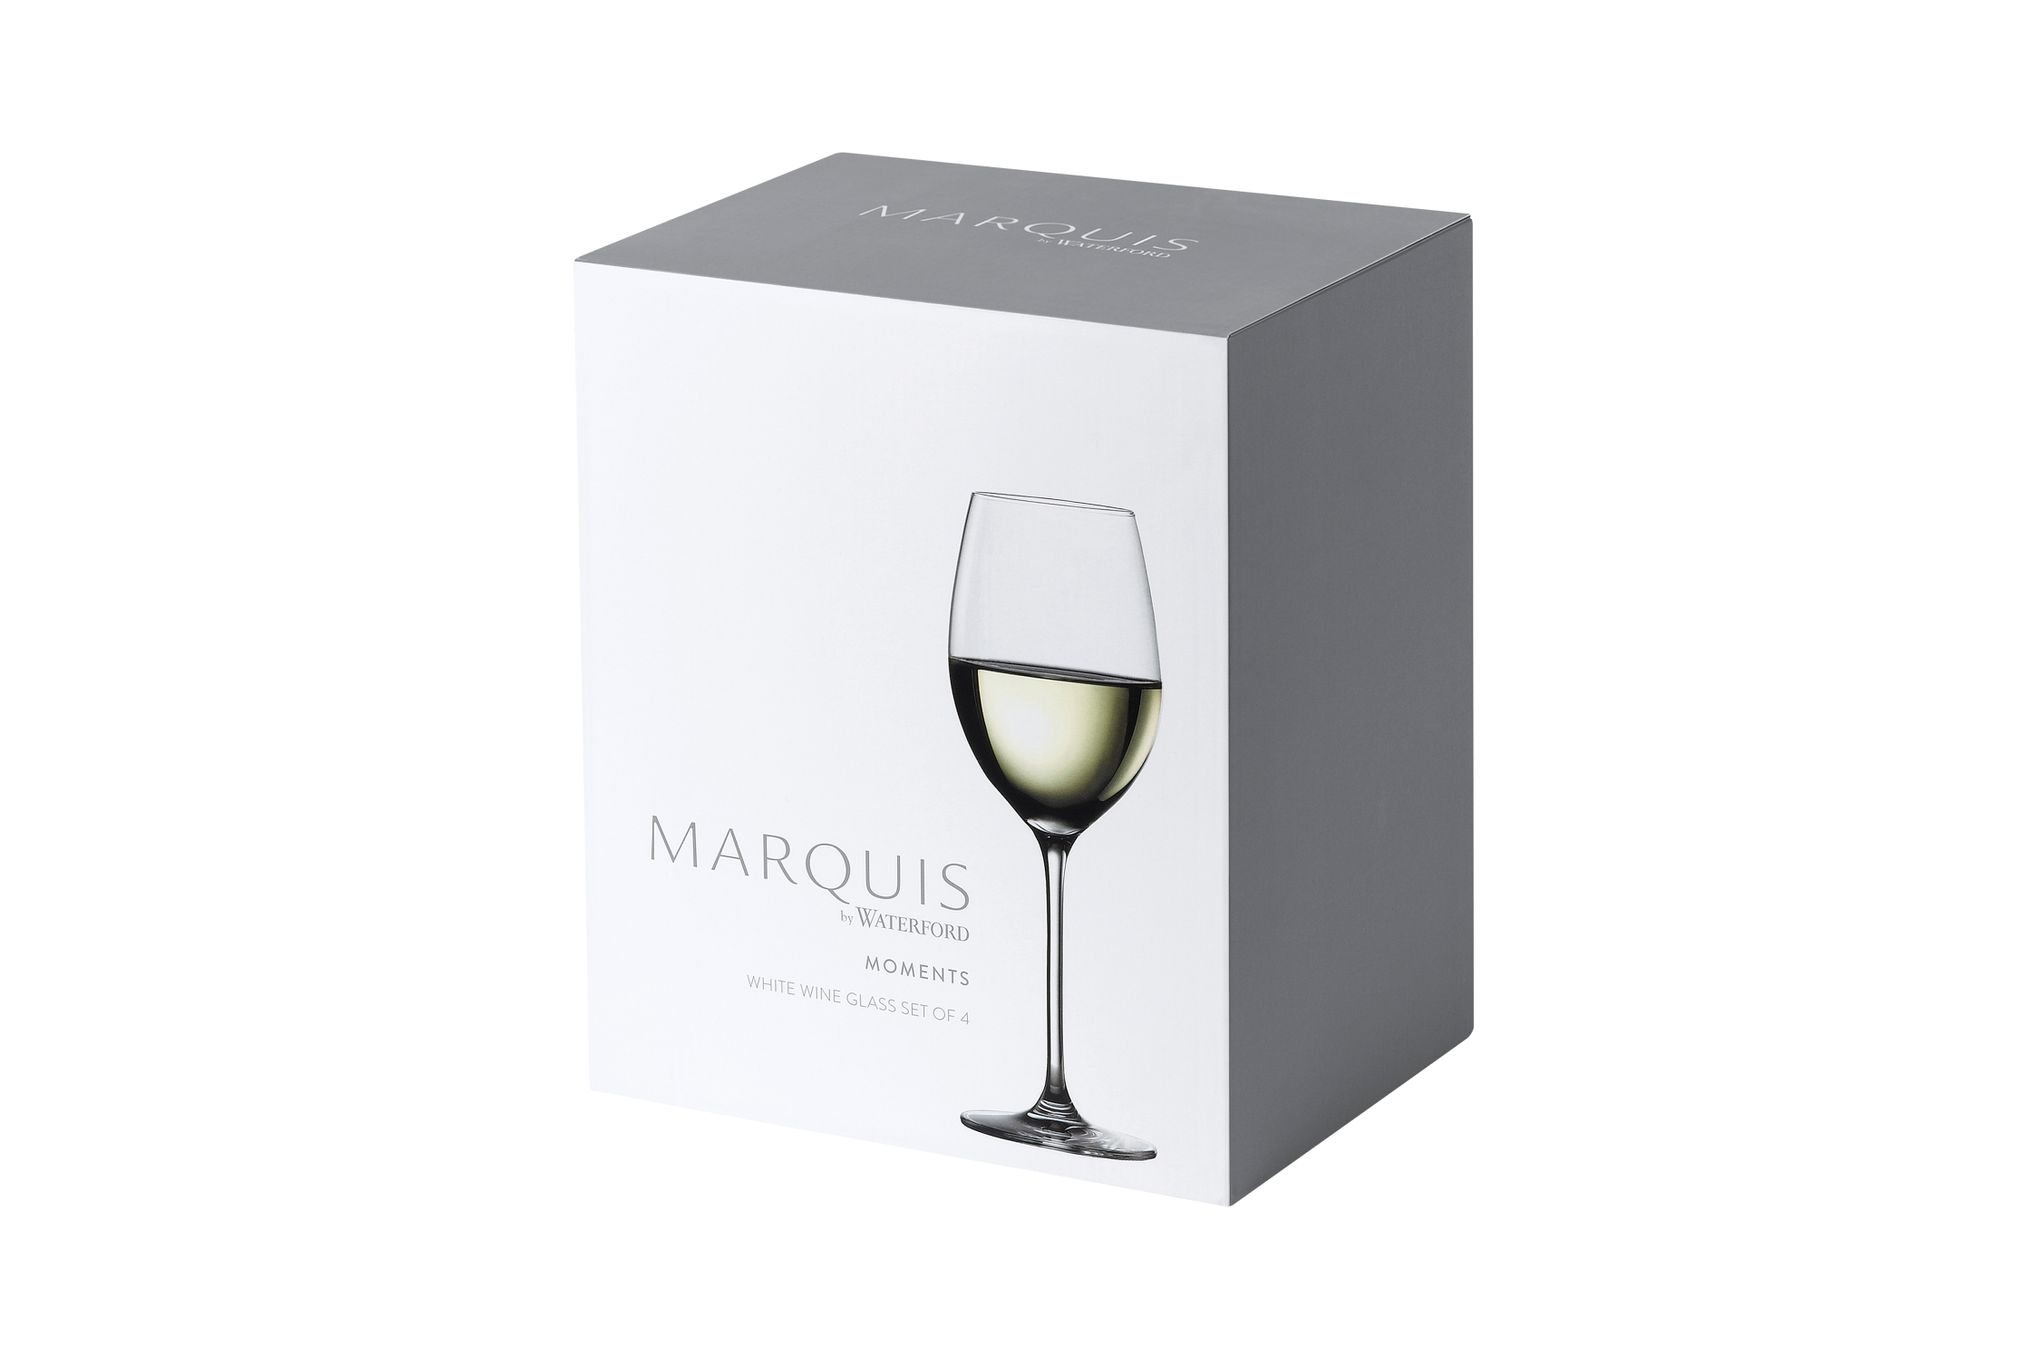 Waterford Marquis Moments Set of 4 White Wine Glasses 380ml thumb 1